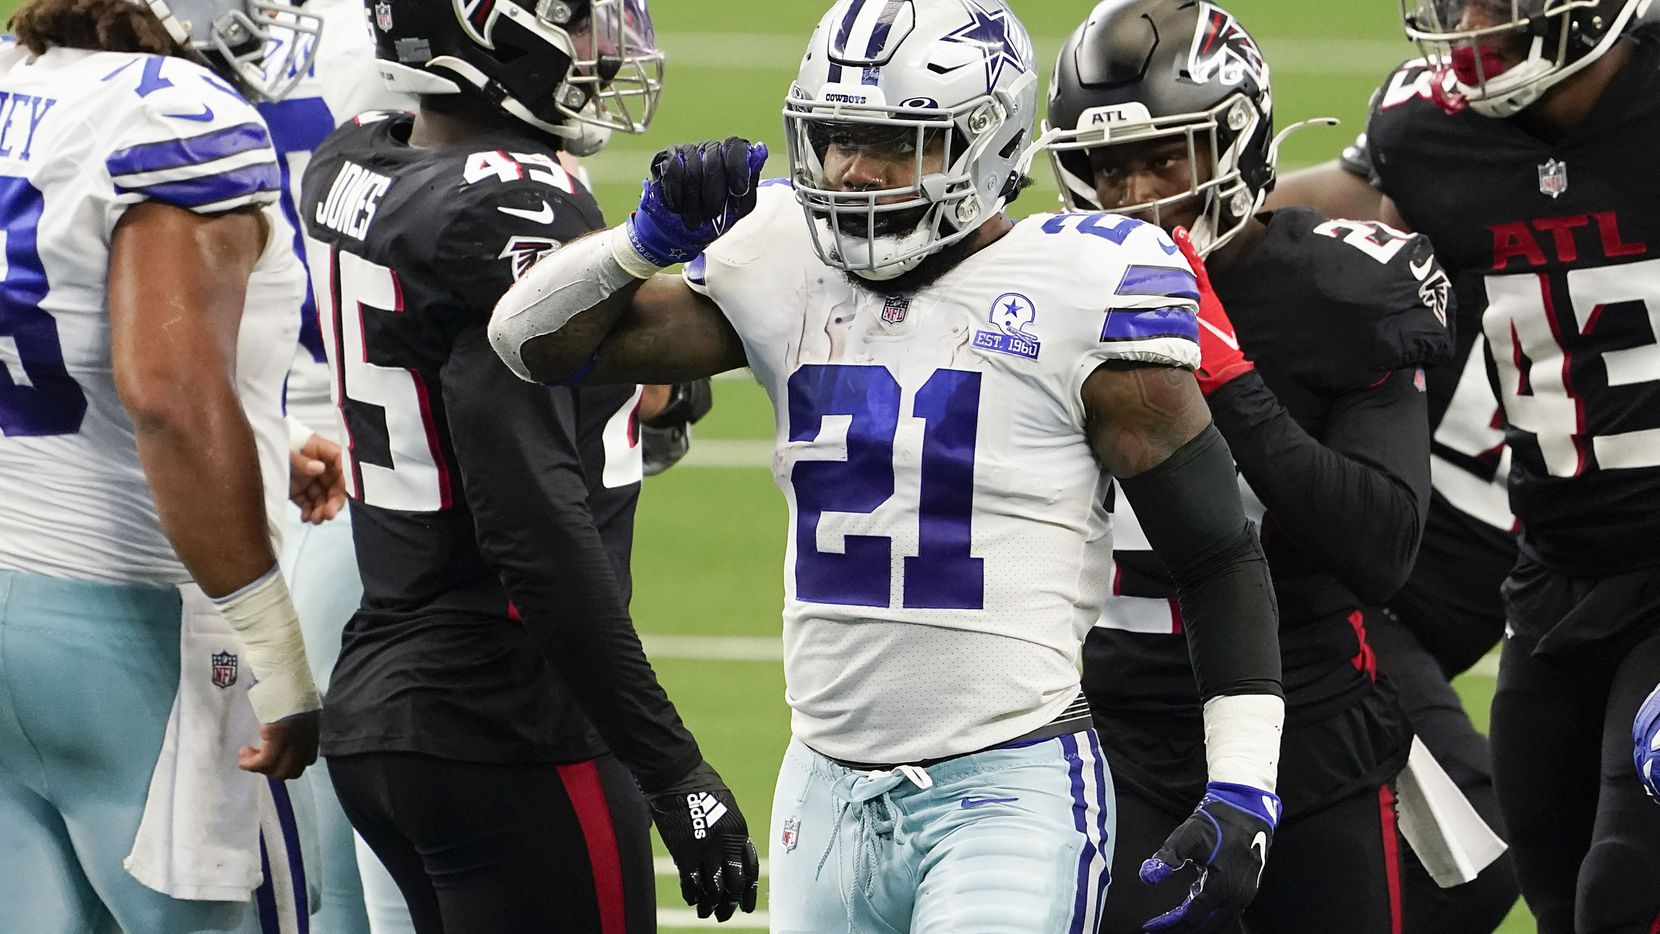 Cowboys running back Ezekiel Elliott celebrates after picking up a first down during the second quarter of a game against the Falcons at AT&T Stadium on Sunday, Sept. 20, 2020, in Arlington.